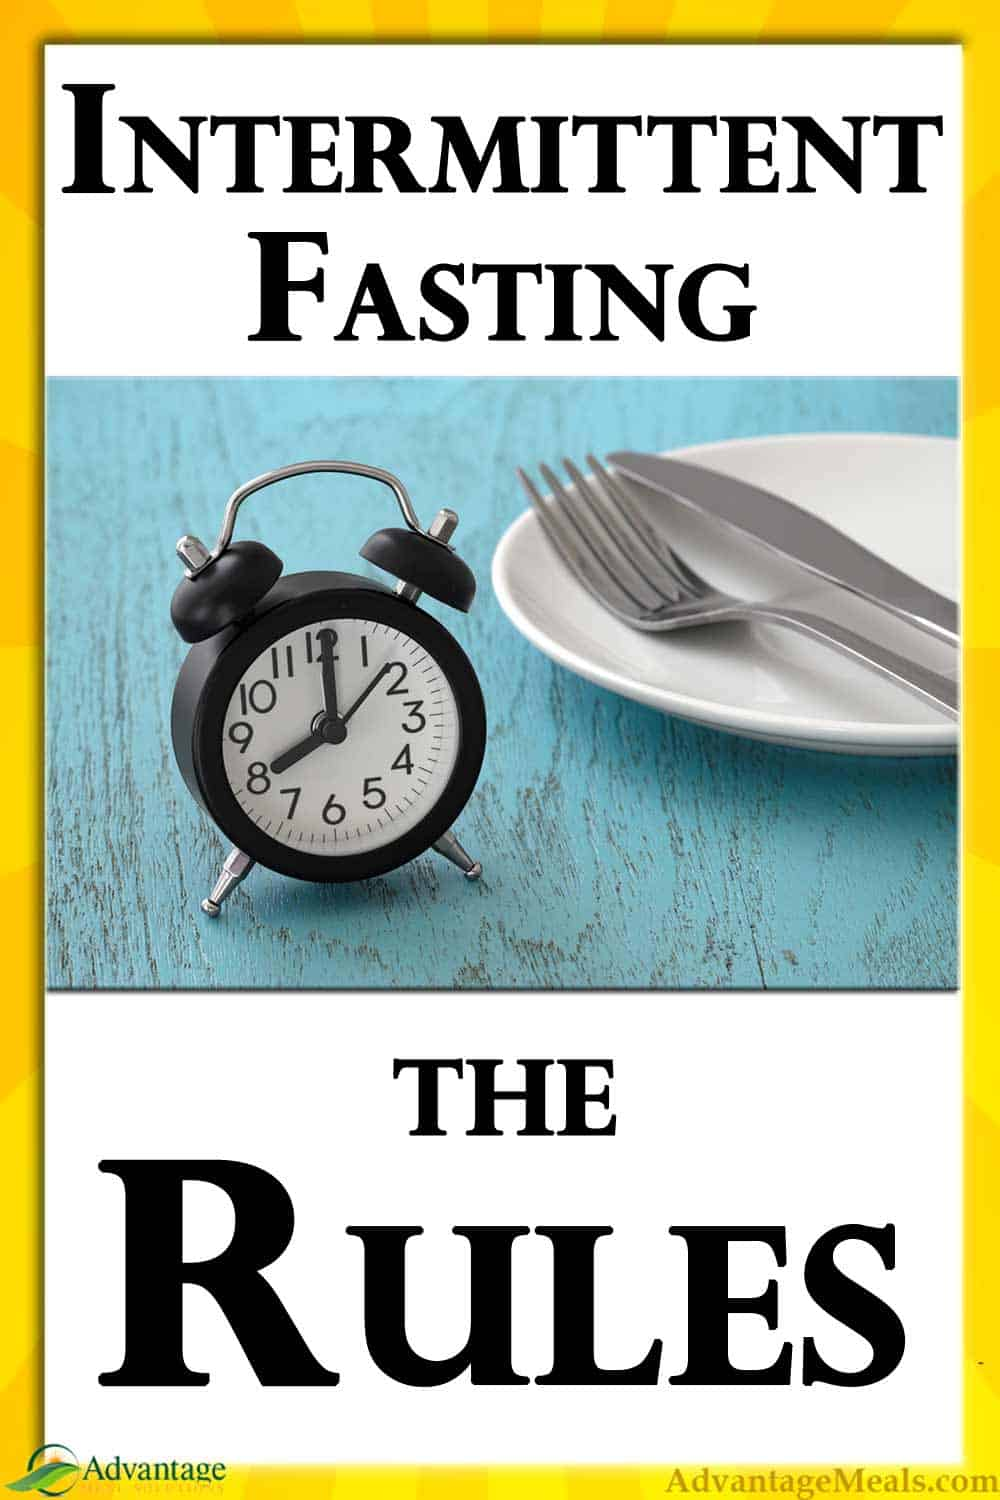 Intermittent Fasting Rules. | Follow these Intermittent Fasting Rules when you add Intermittent Fasting to your diet to lose weight fast and effortlessly.  Intermittent Fasting is the secret to losing more weight faster, especially when combined with a ketogenic diet. #IntermittentFasting #IF